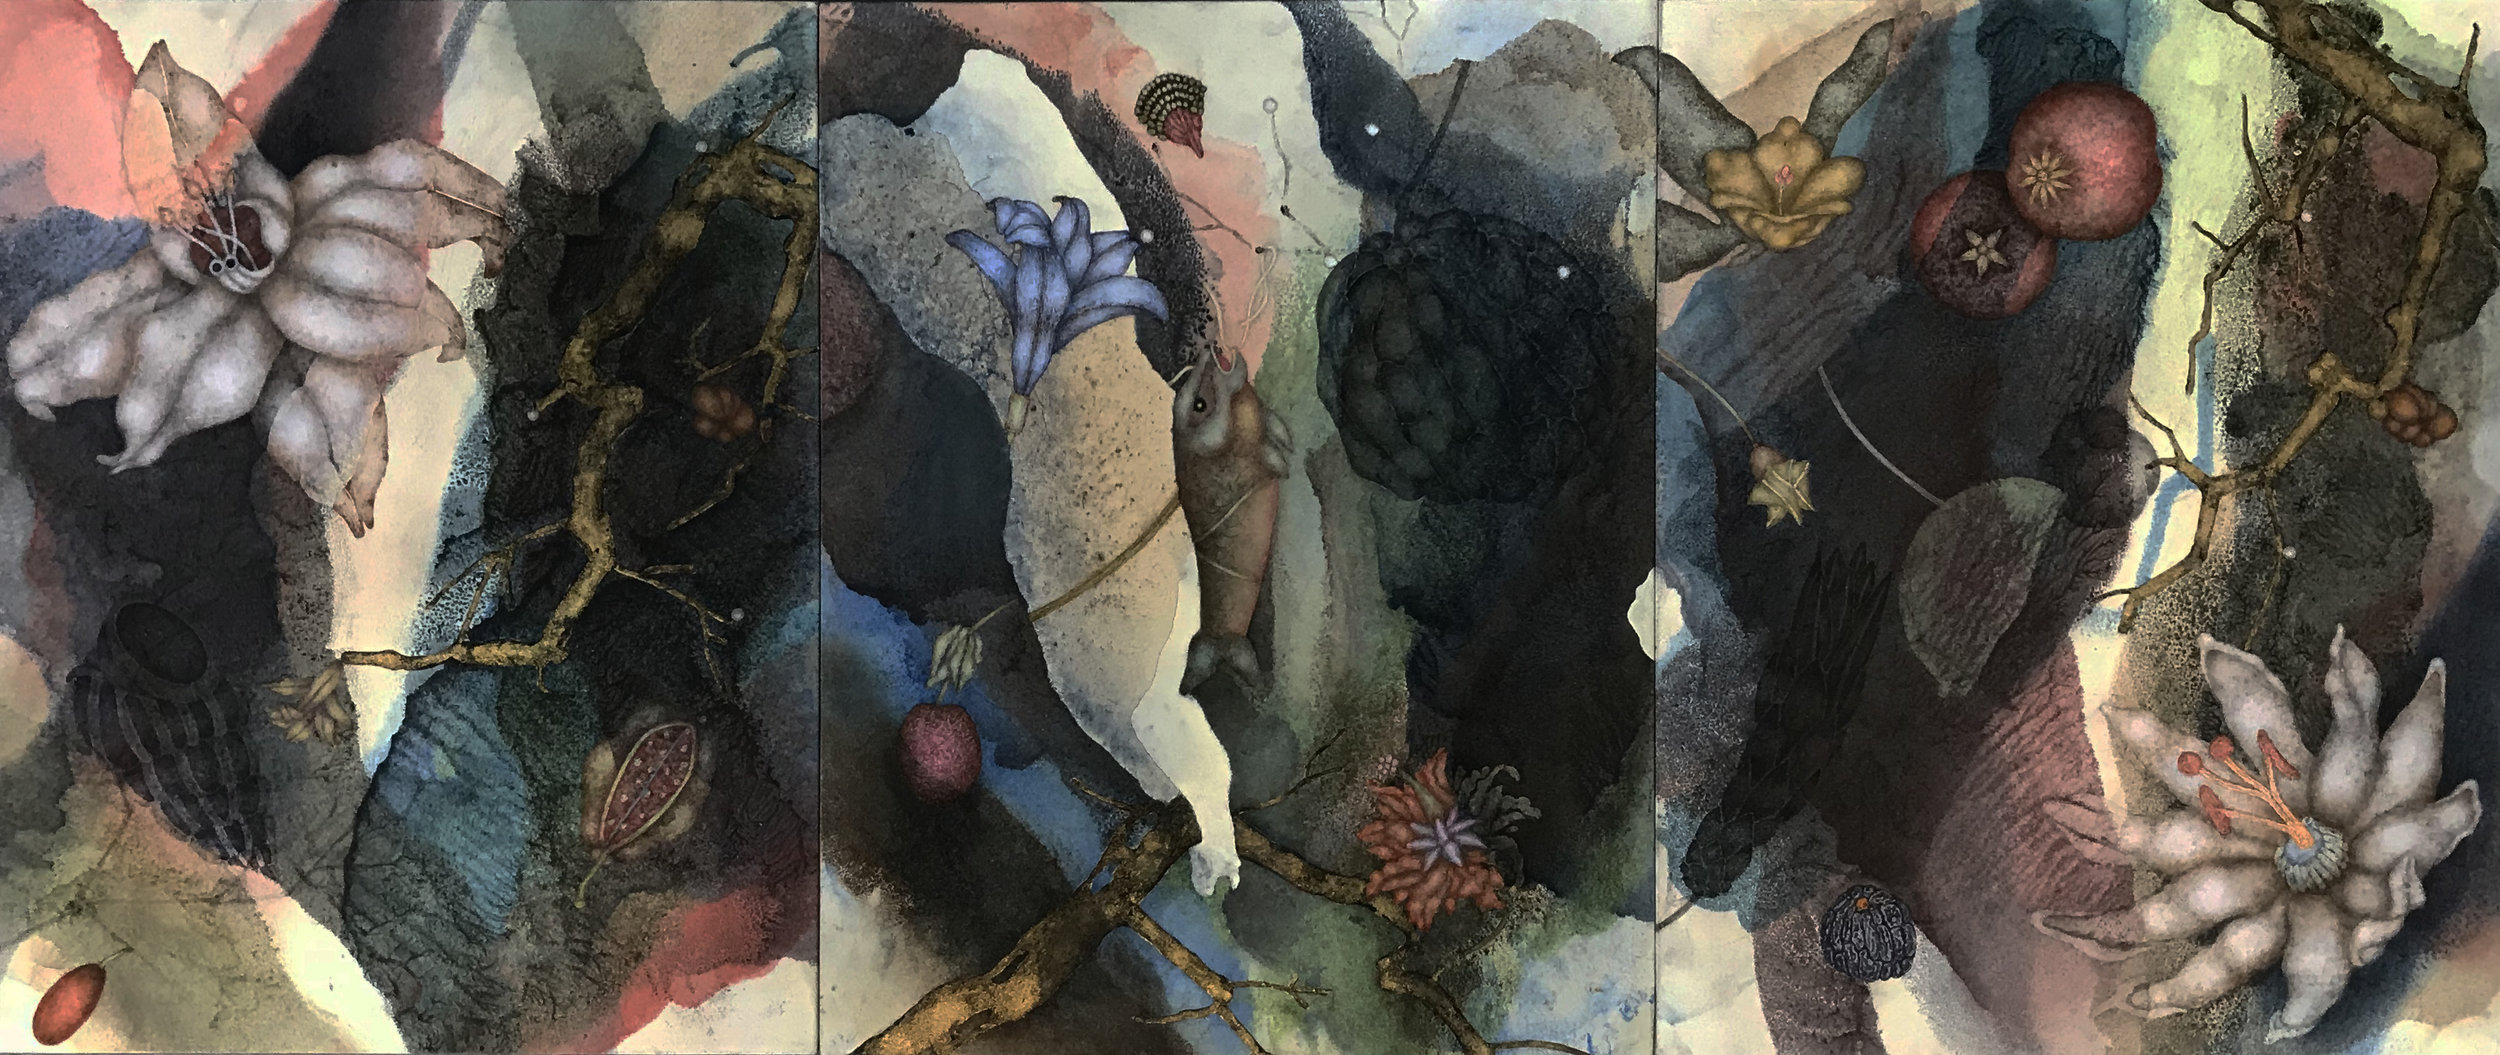 Copy of Carnival Dust I (2019), 14in x 33in, oil, asphaltum, encaustic, gold leaf on Okawara paper on panel(s)